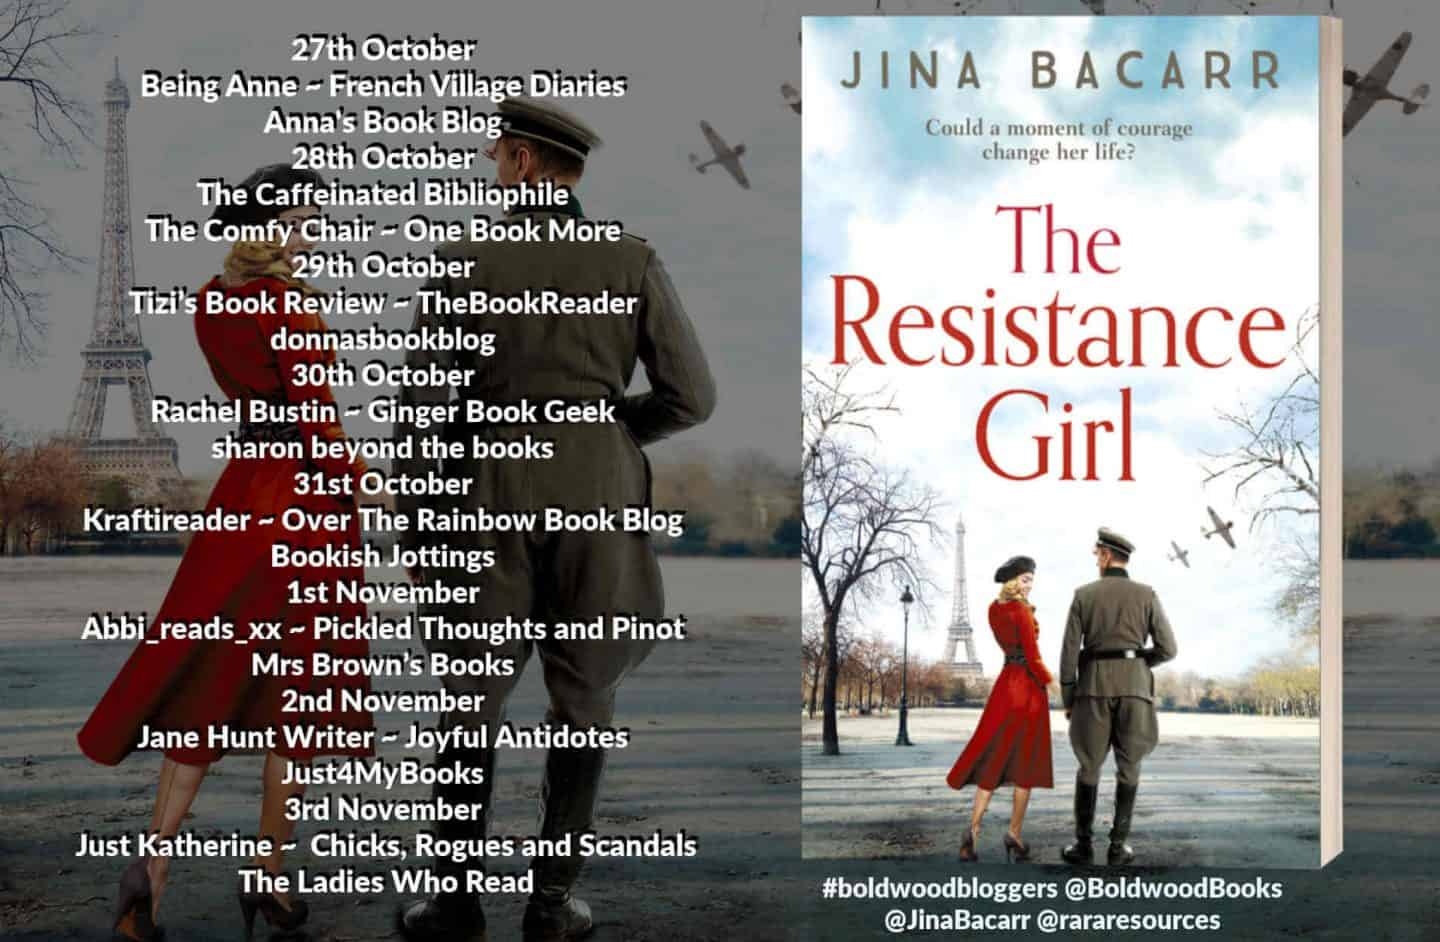 The Resistance Girl by Jina Bacarr